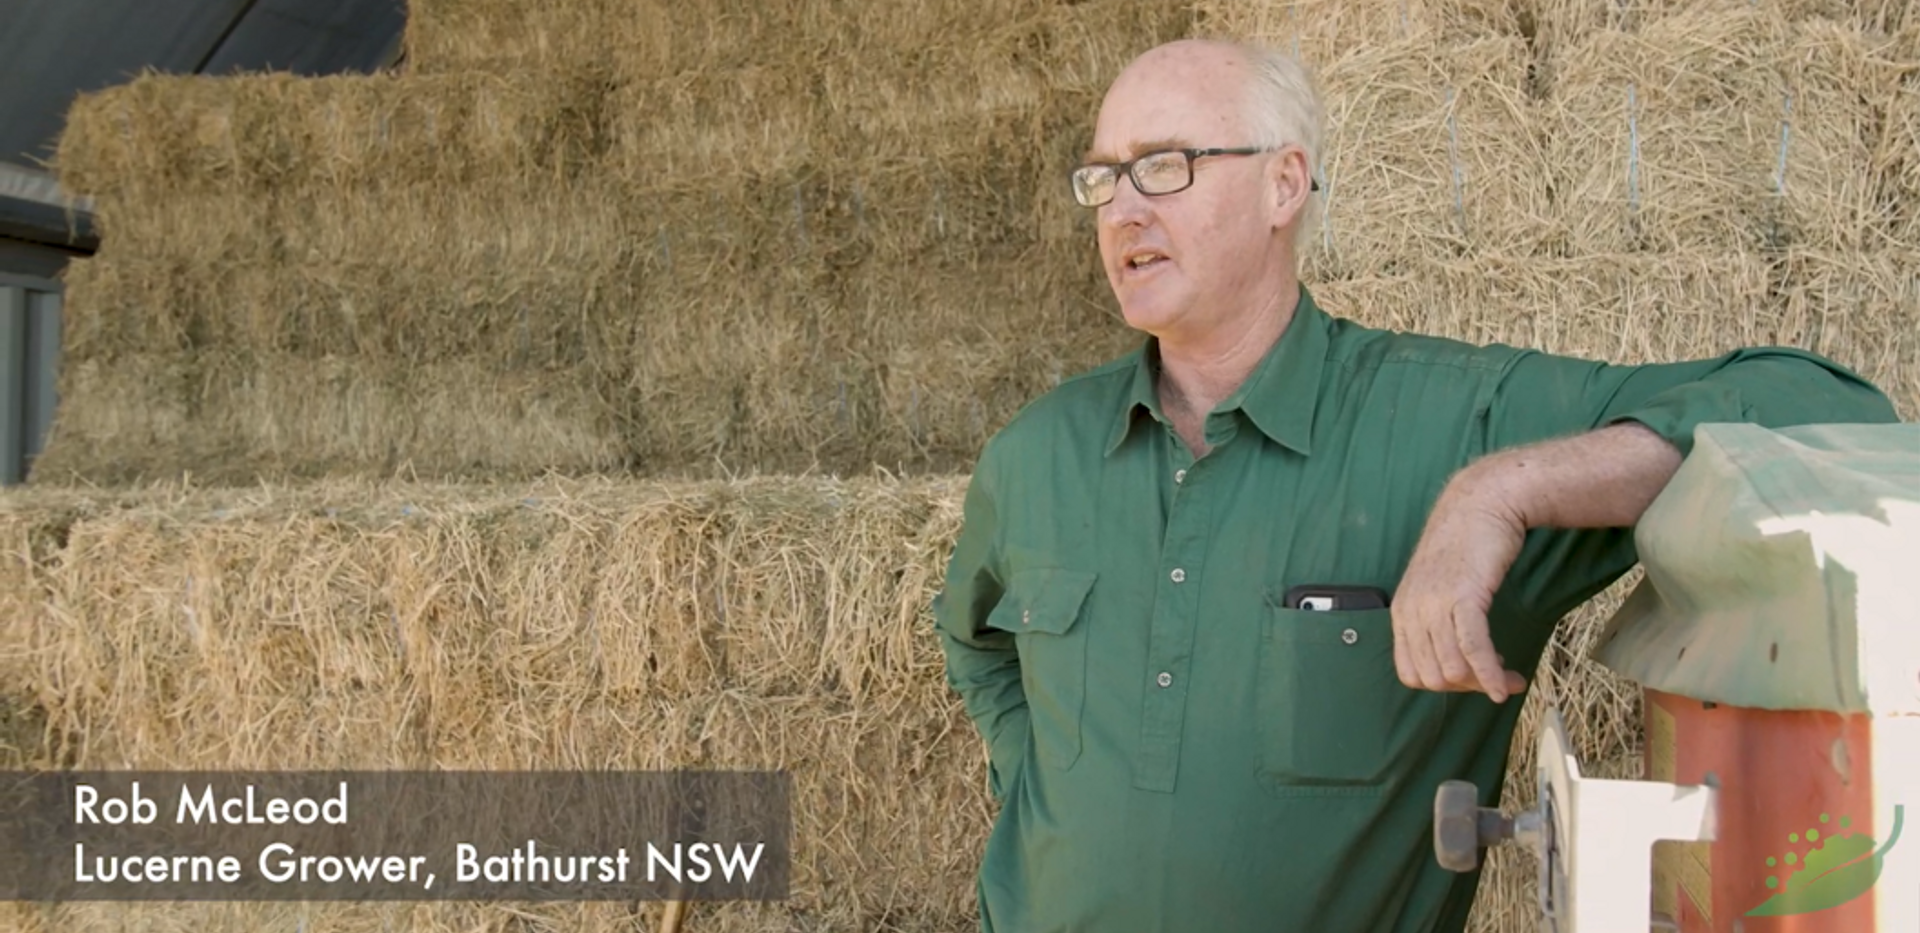 Lucerne Grower - Testimonial with subtitles